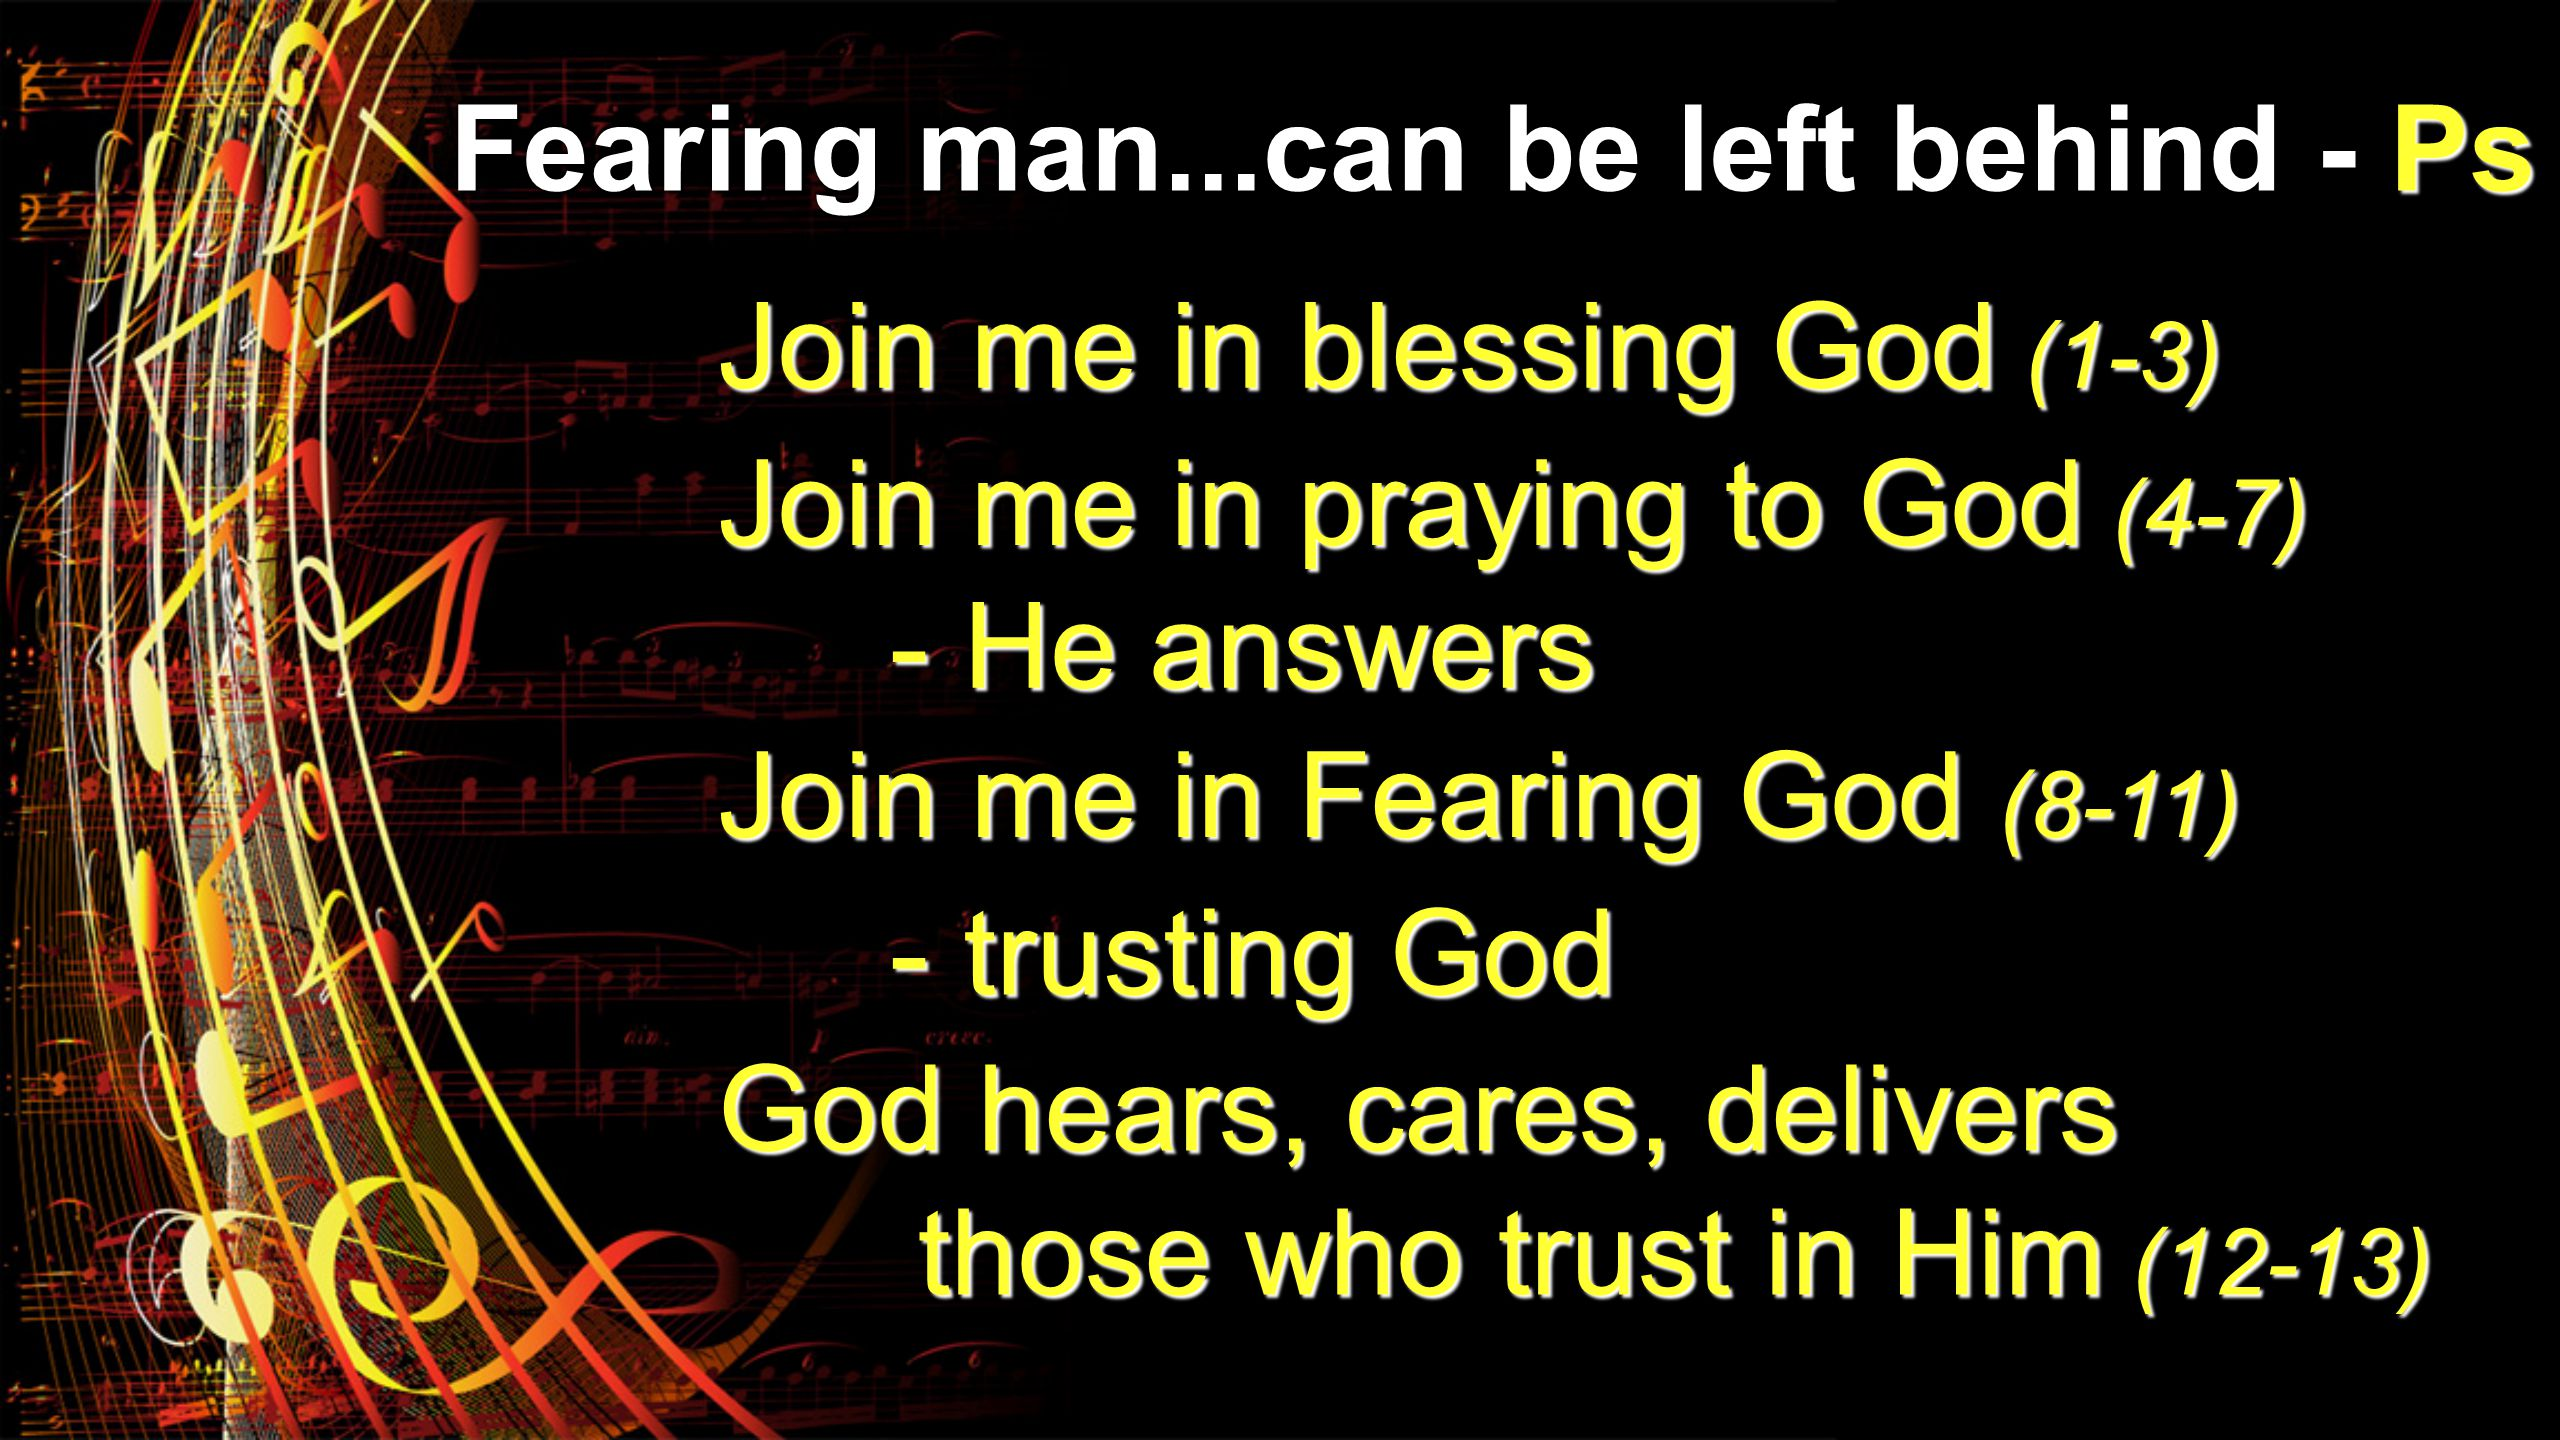 Join me in blessing God (1-3) Join me in praying to God (4-7) - He answers - He answers Join me in Fearing God (8-11) - trusting God - trusting God Go